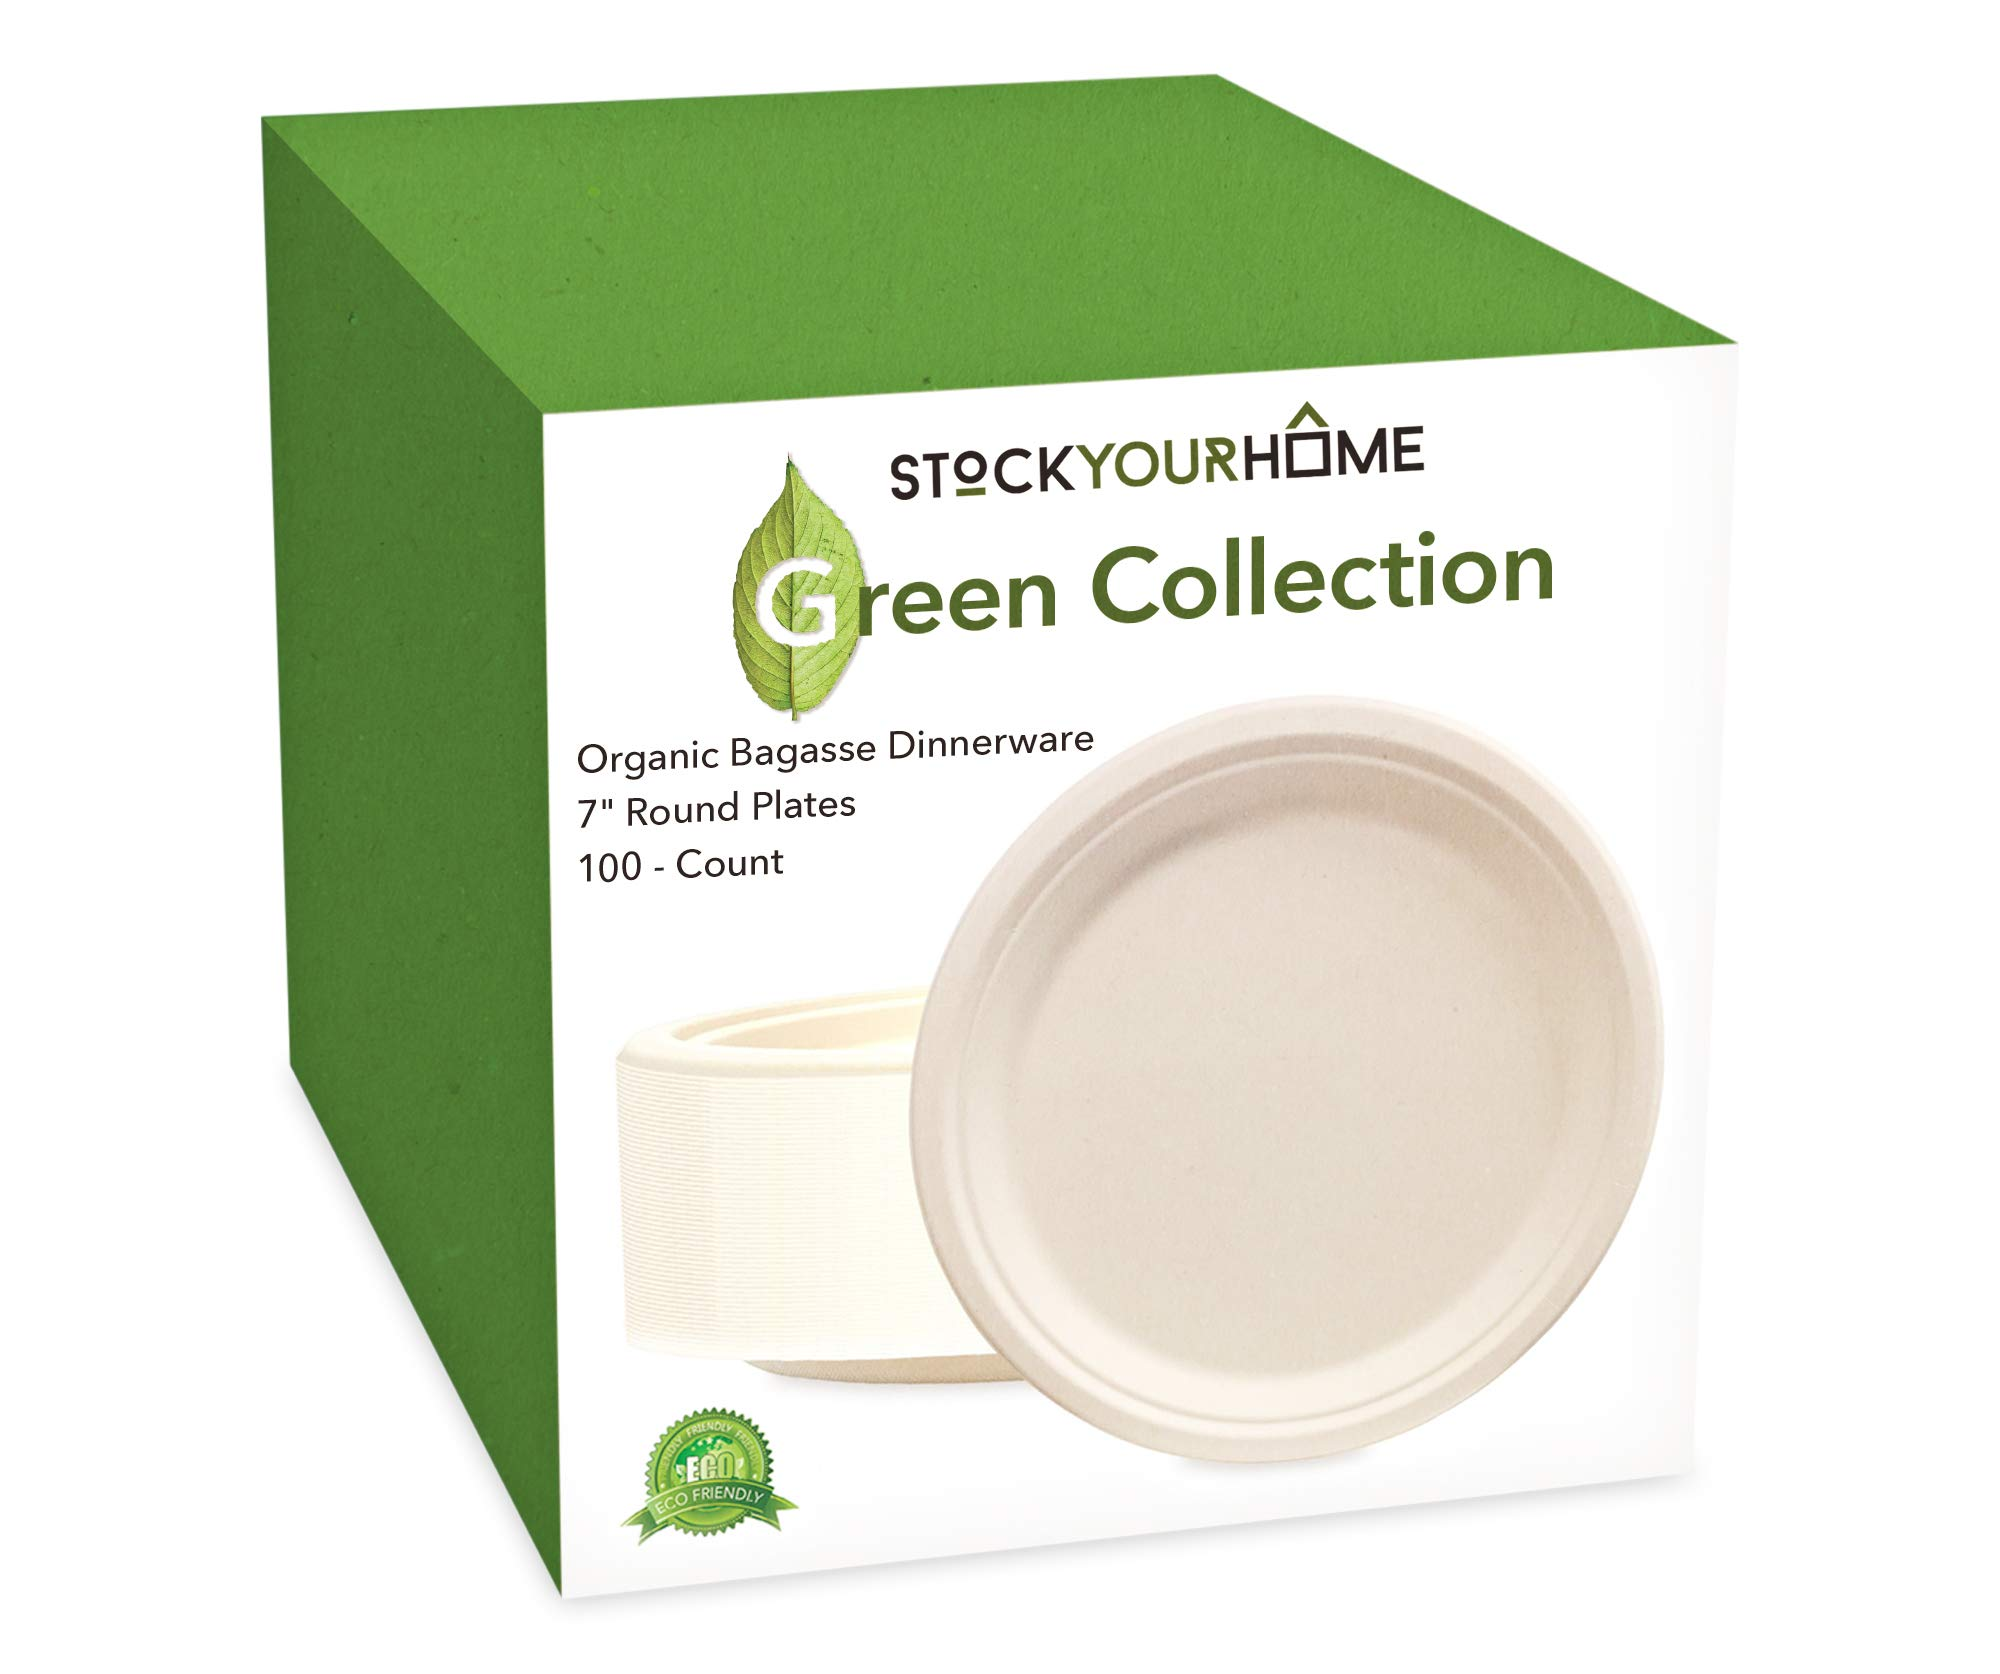 100 Pack of 7'' Round Organic Bagasse Plates Ecofriendly Disposable Small Plates for Picnic, Party, Catering & Everyday Use - Stock Your Home by Stock Your Home